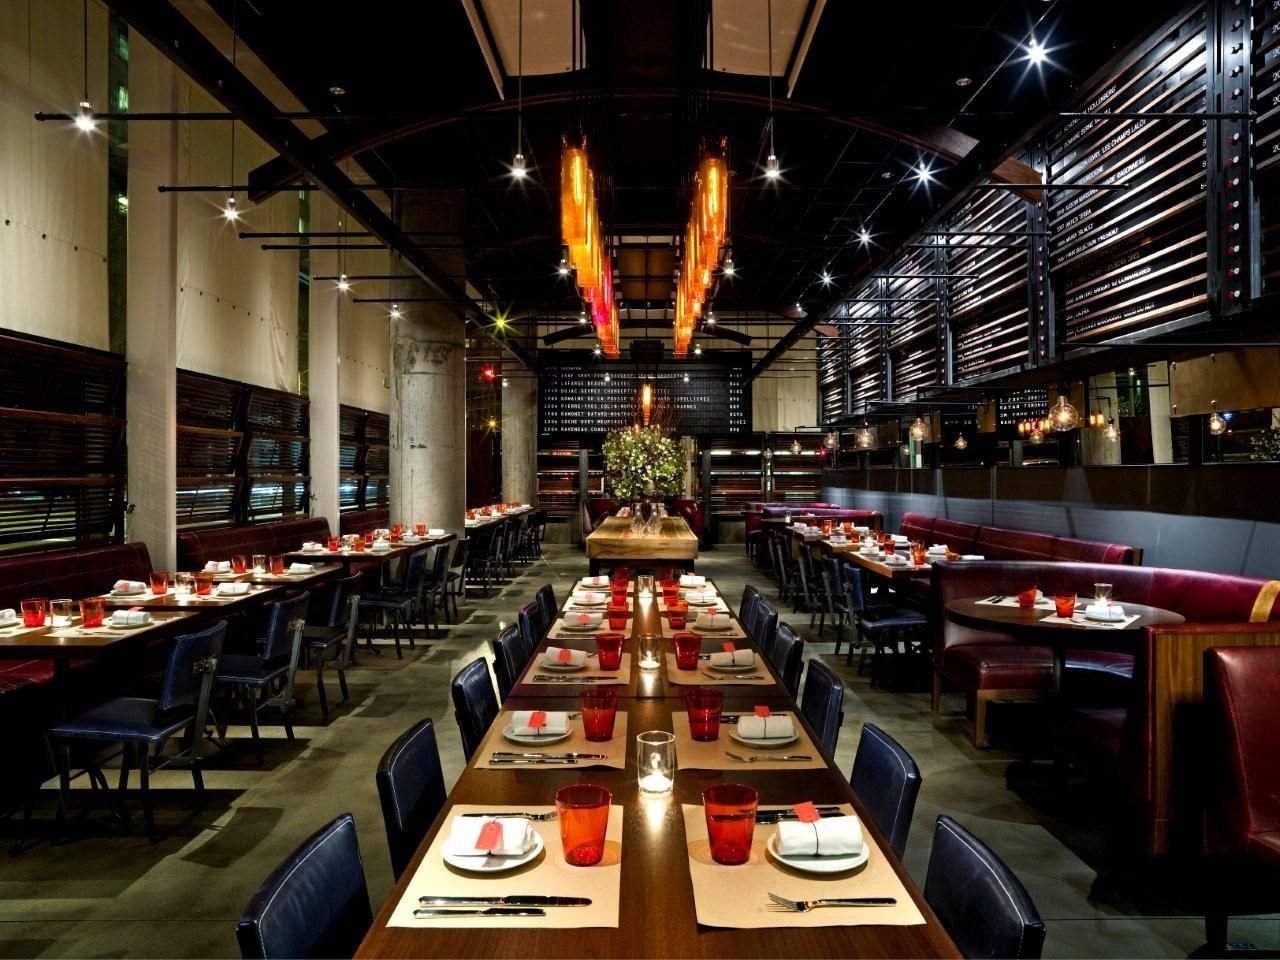 Rn74 Michael Mina's Urban Wine Bar And Restaurant Located In San Gorgeous Stk Private Dining Room Inspiration Design